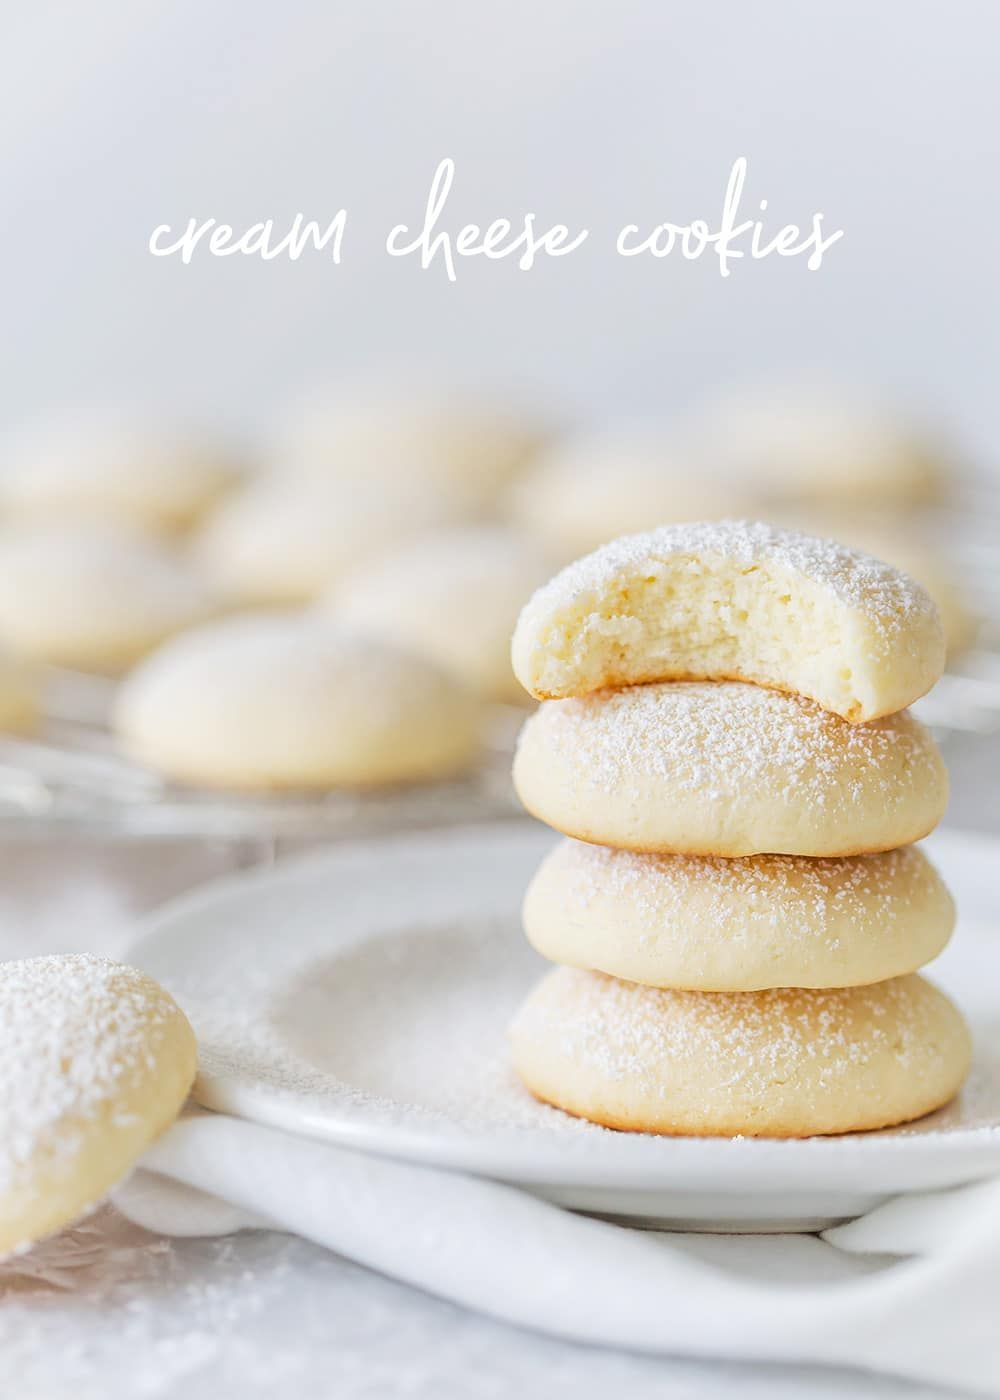 cream-cheese-cookies-recipe.jpg